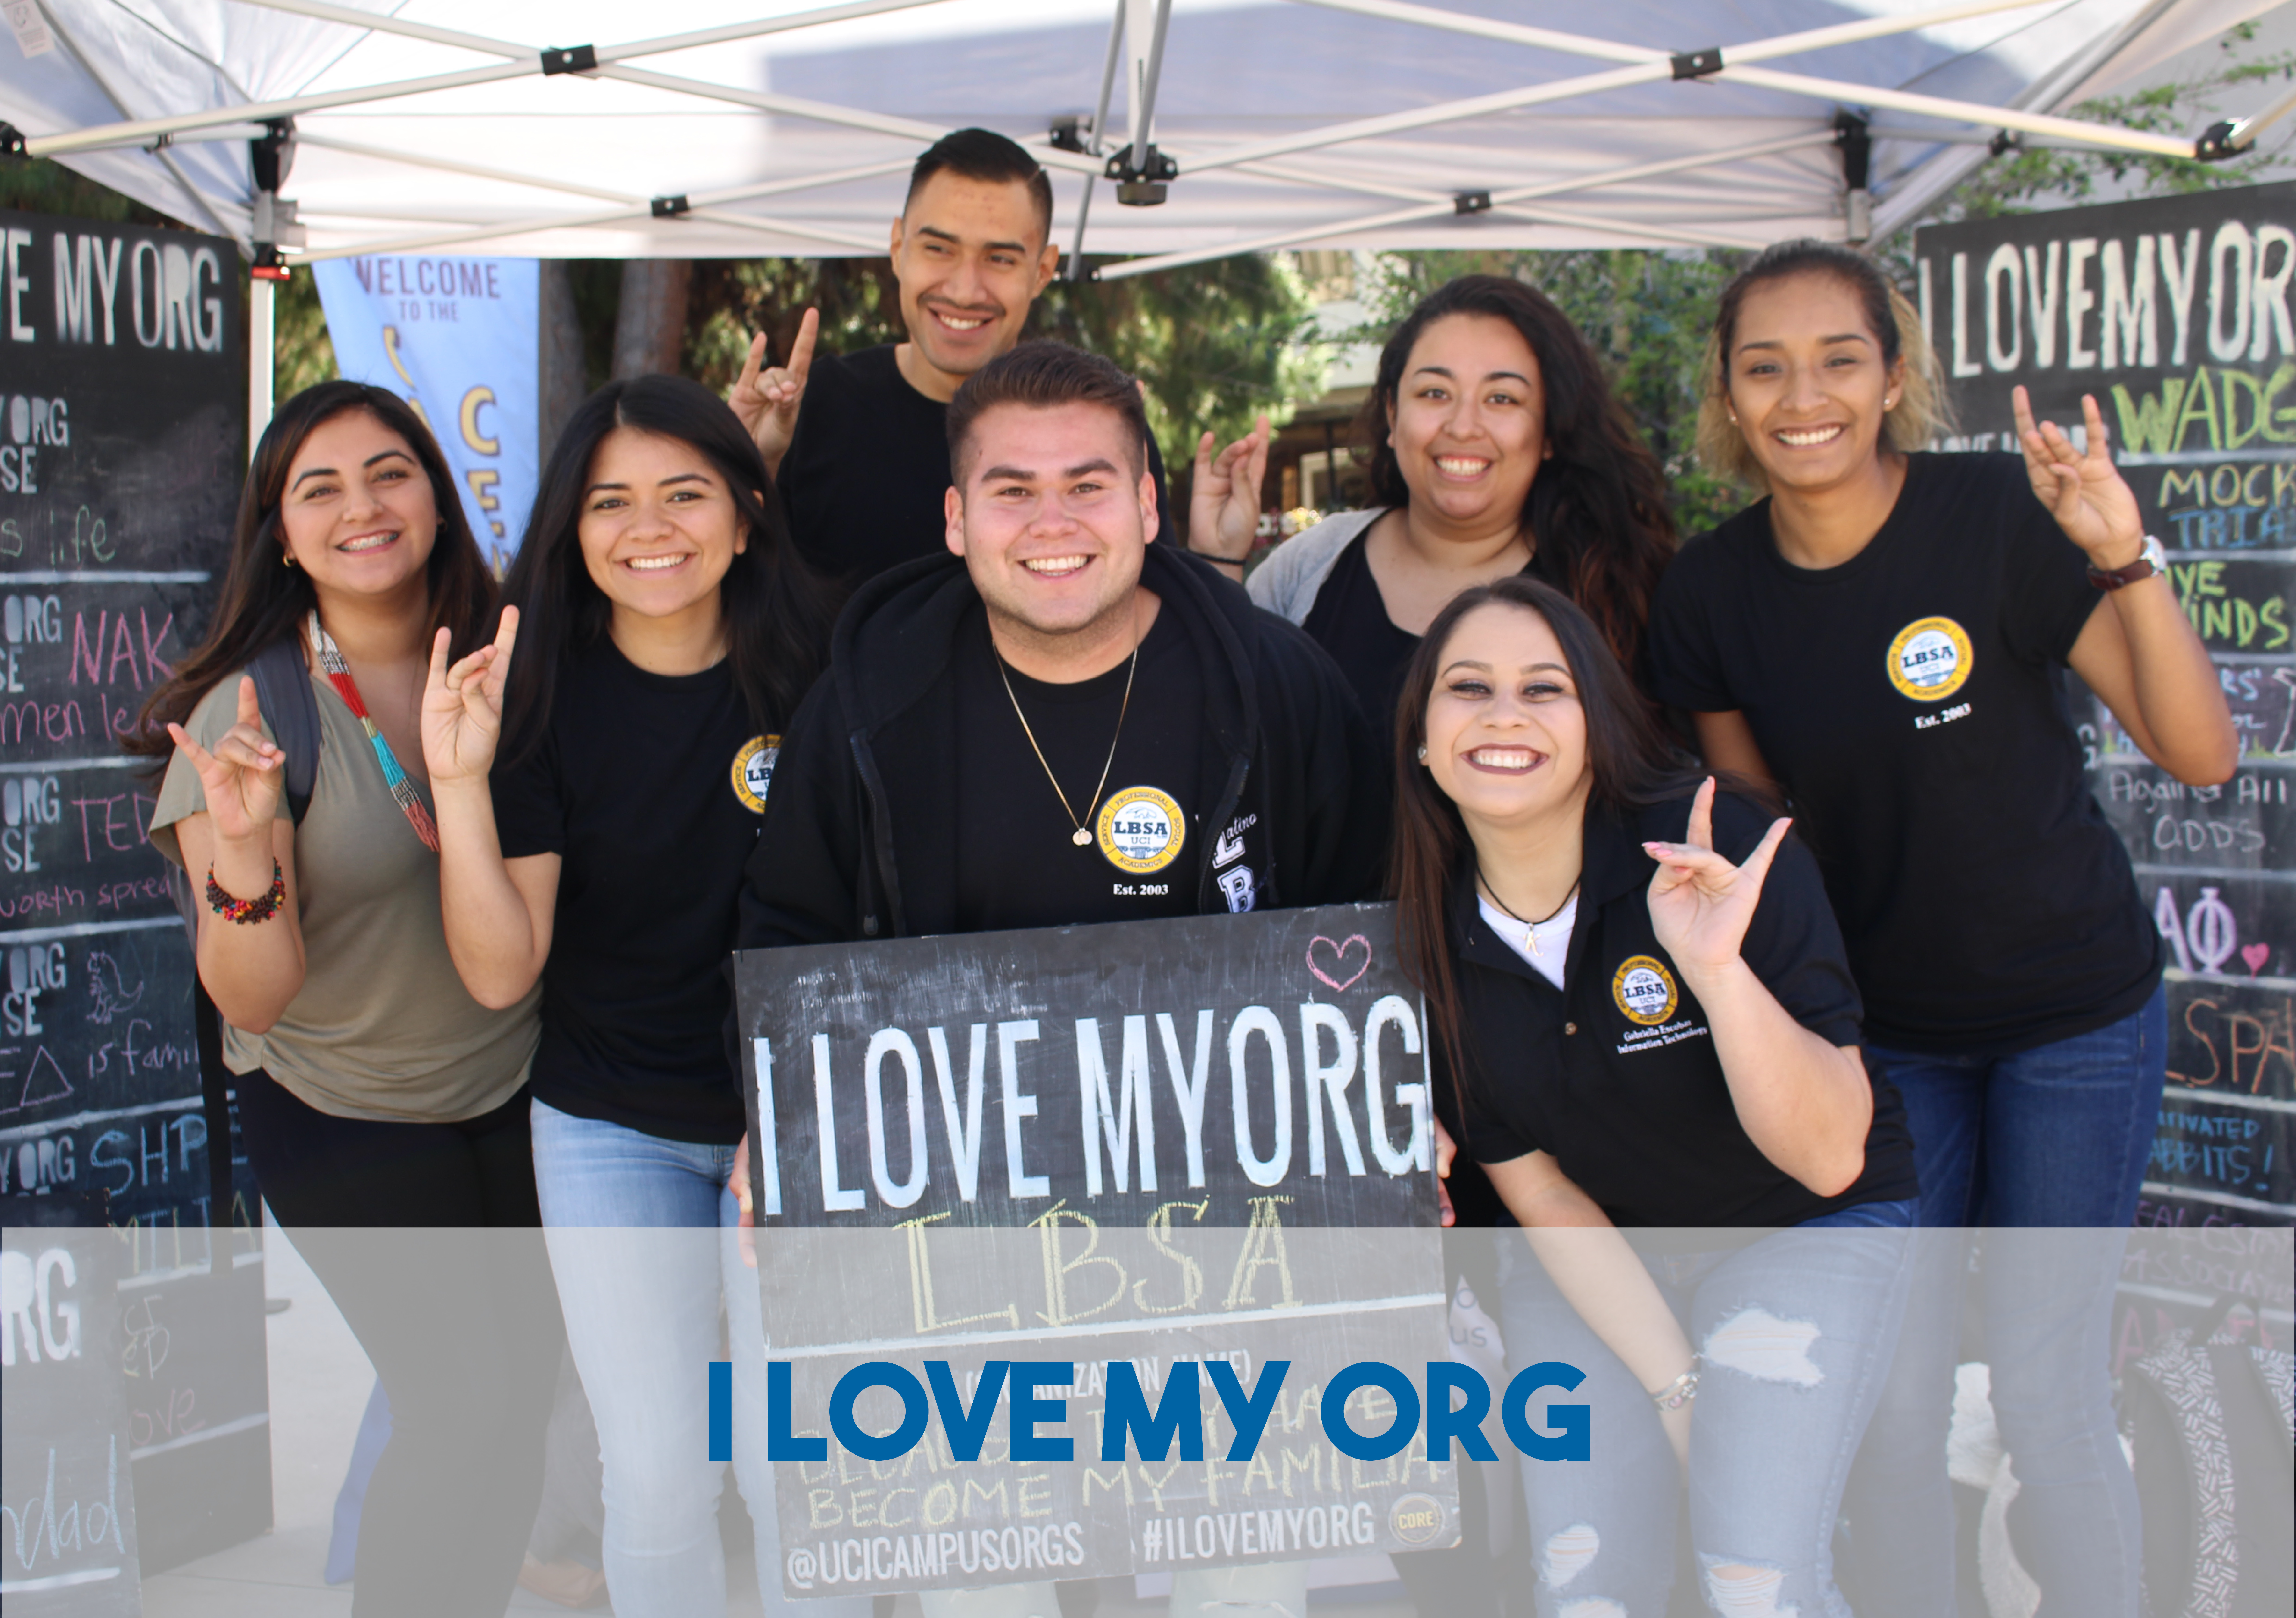 Students posing with I Love My Org Board